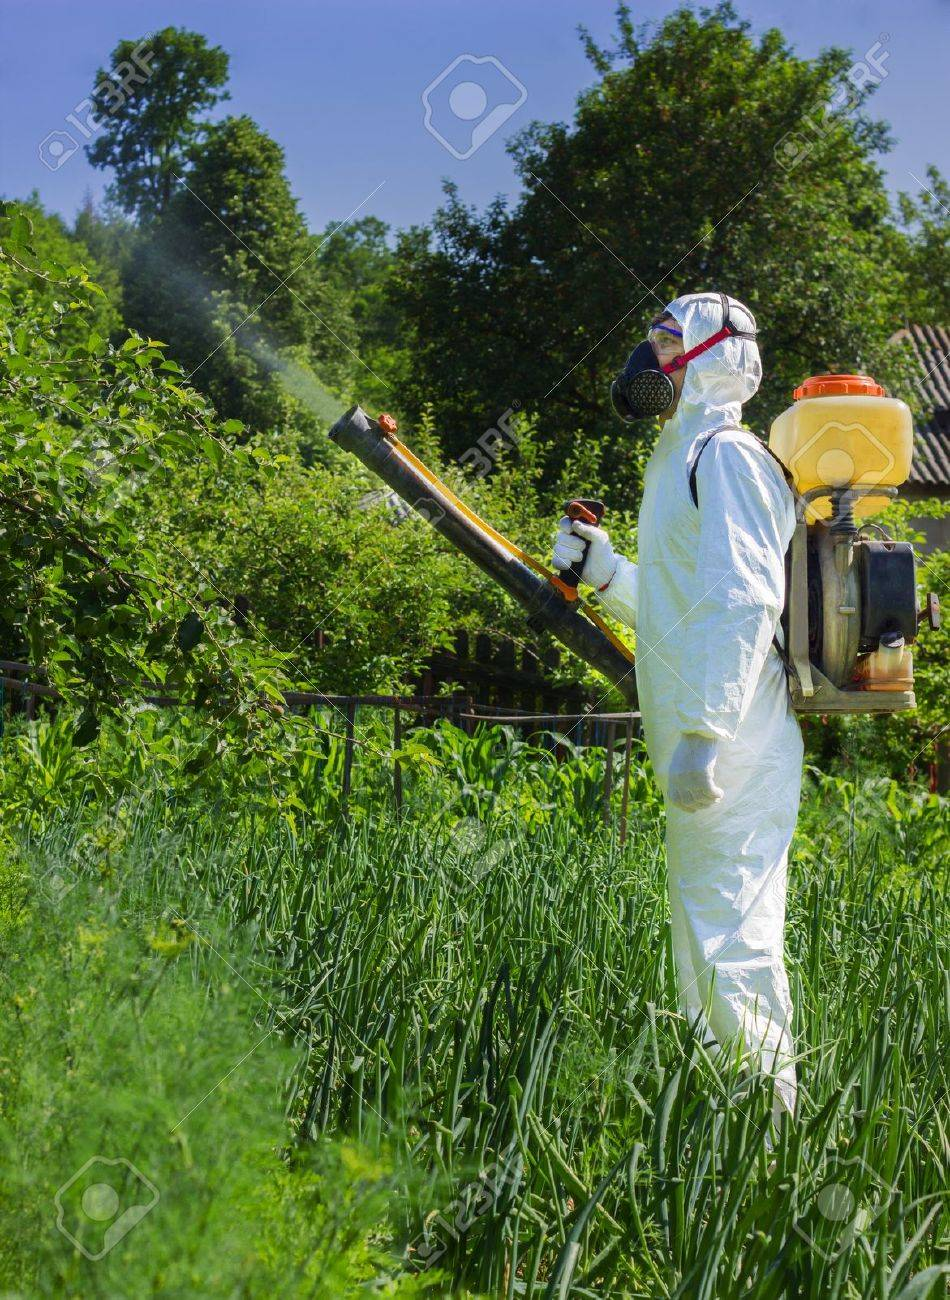 Country Farmer Spraying Insecticide In His Garden Stock Photo